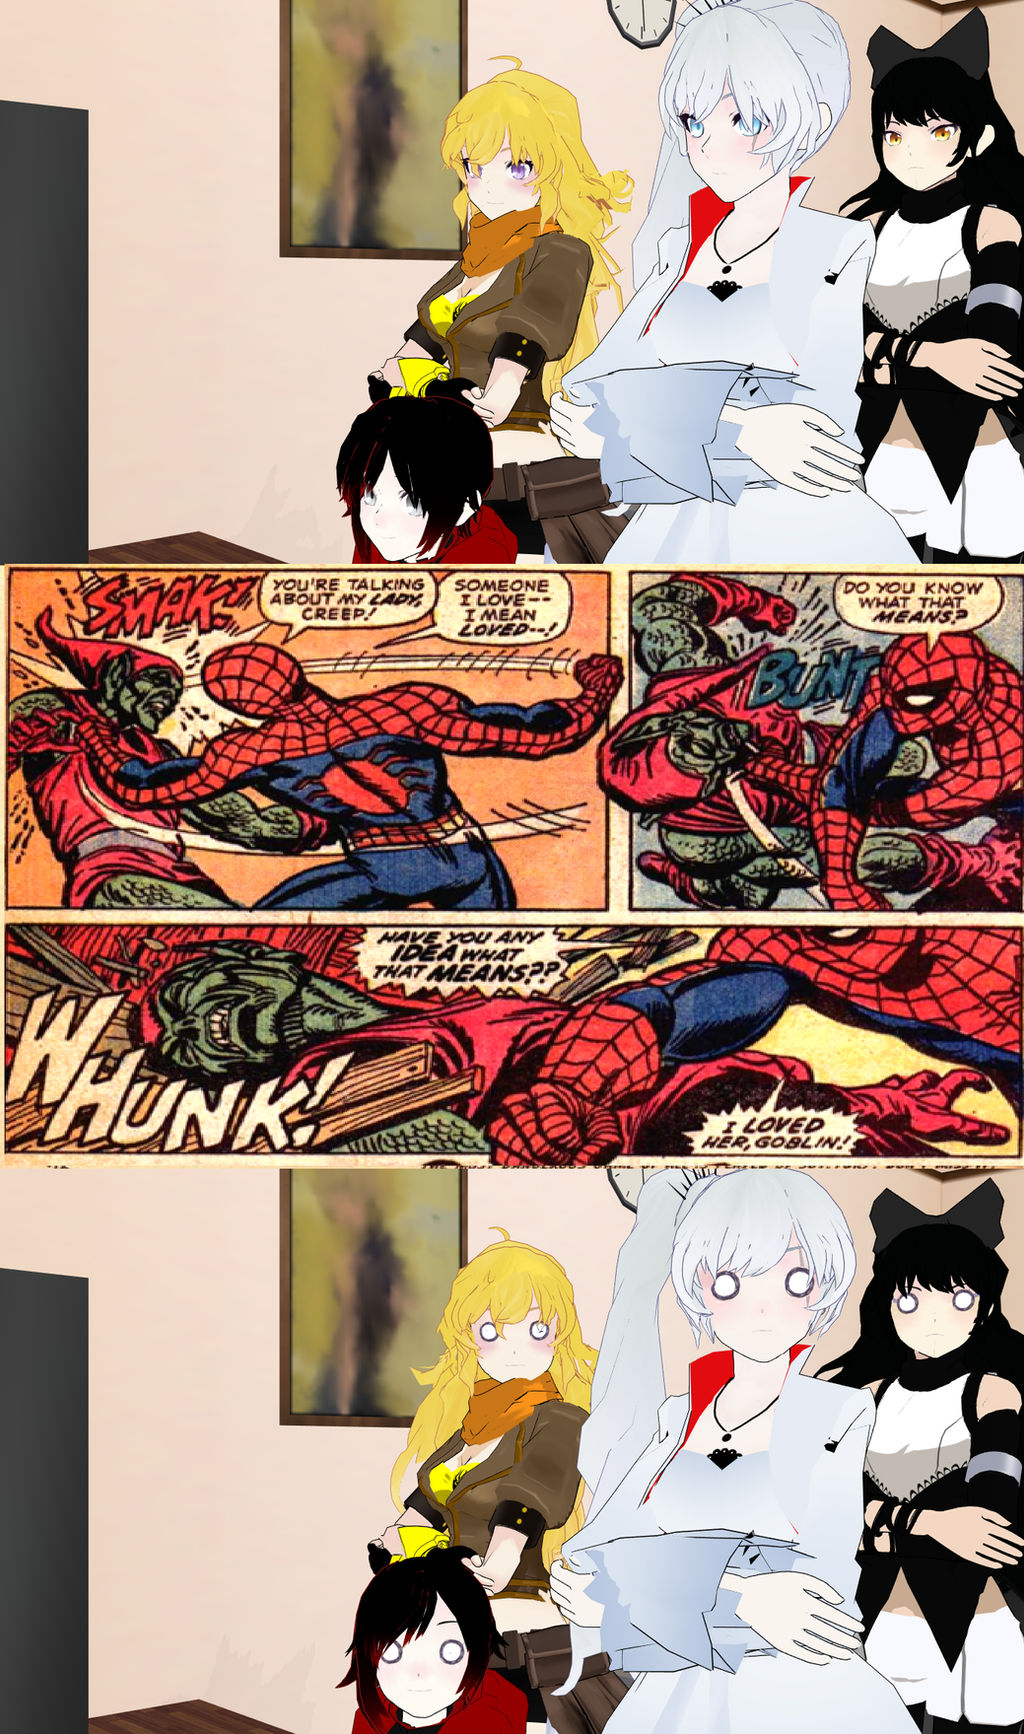 Rwby React to a Angry Spiderman by KeybladeMagicDan on